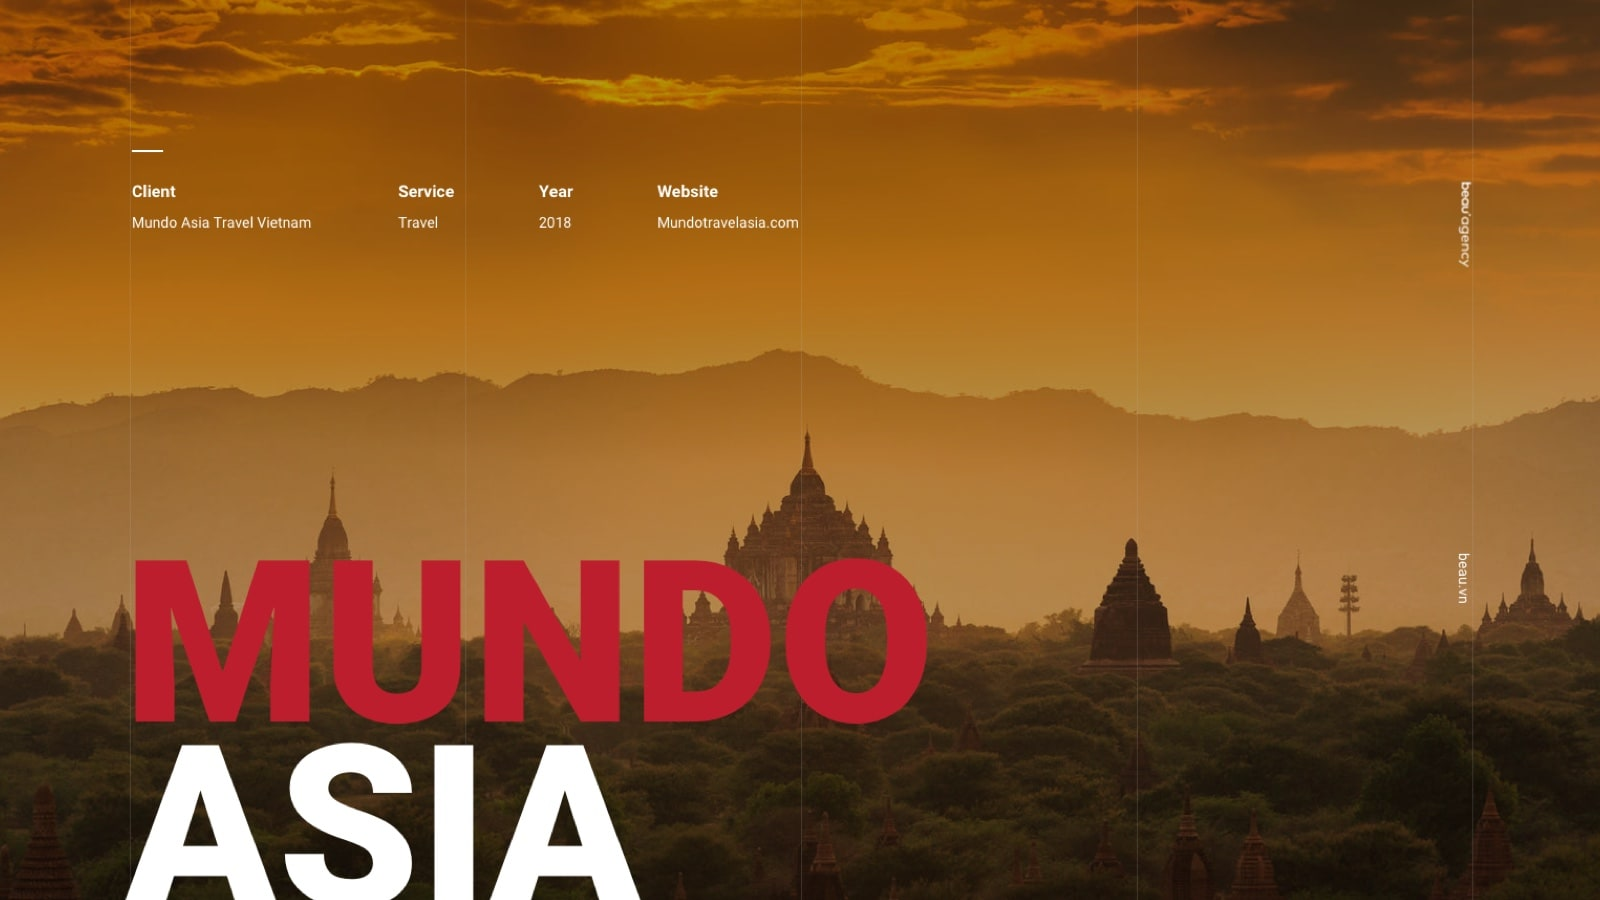 Mundo Asian Travel